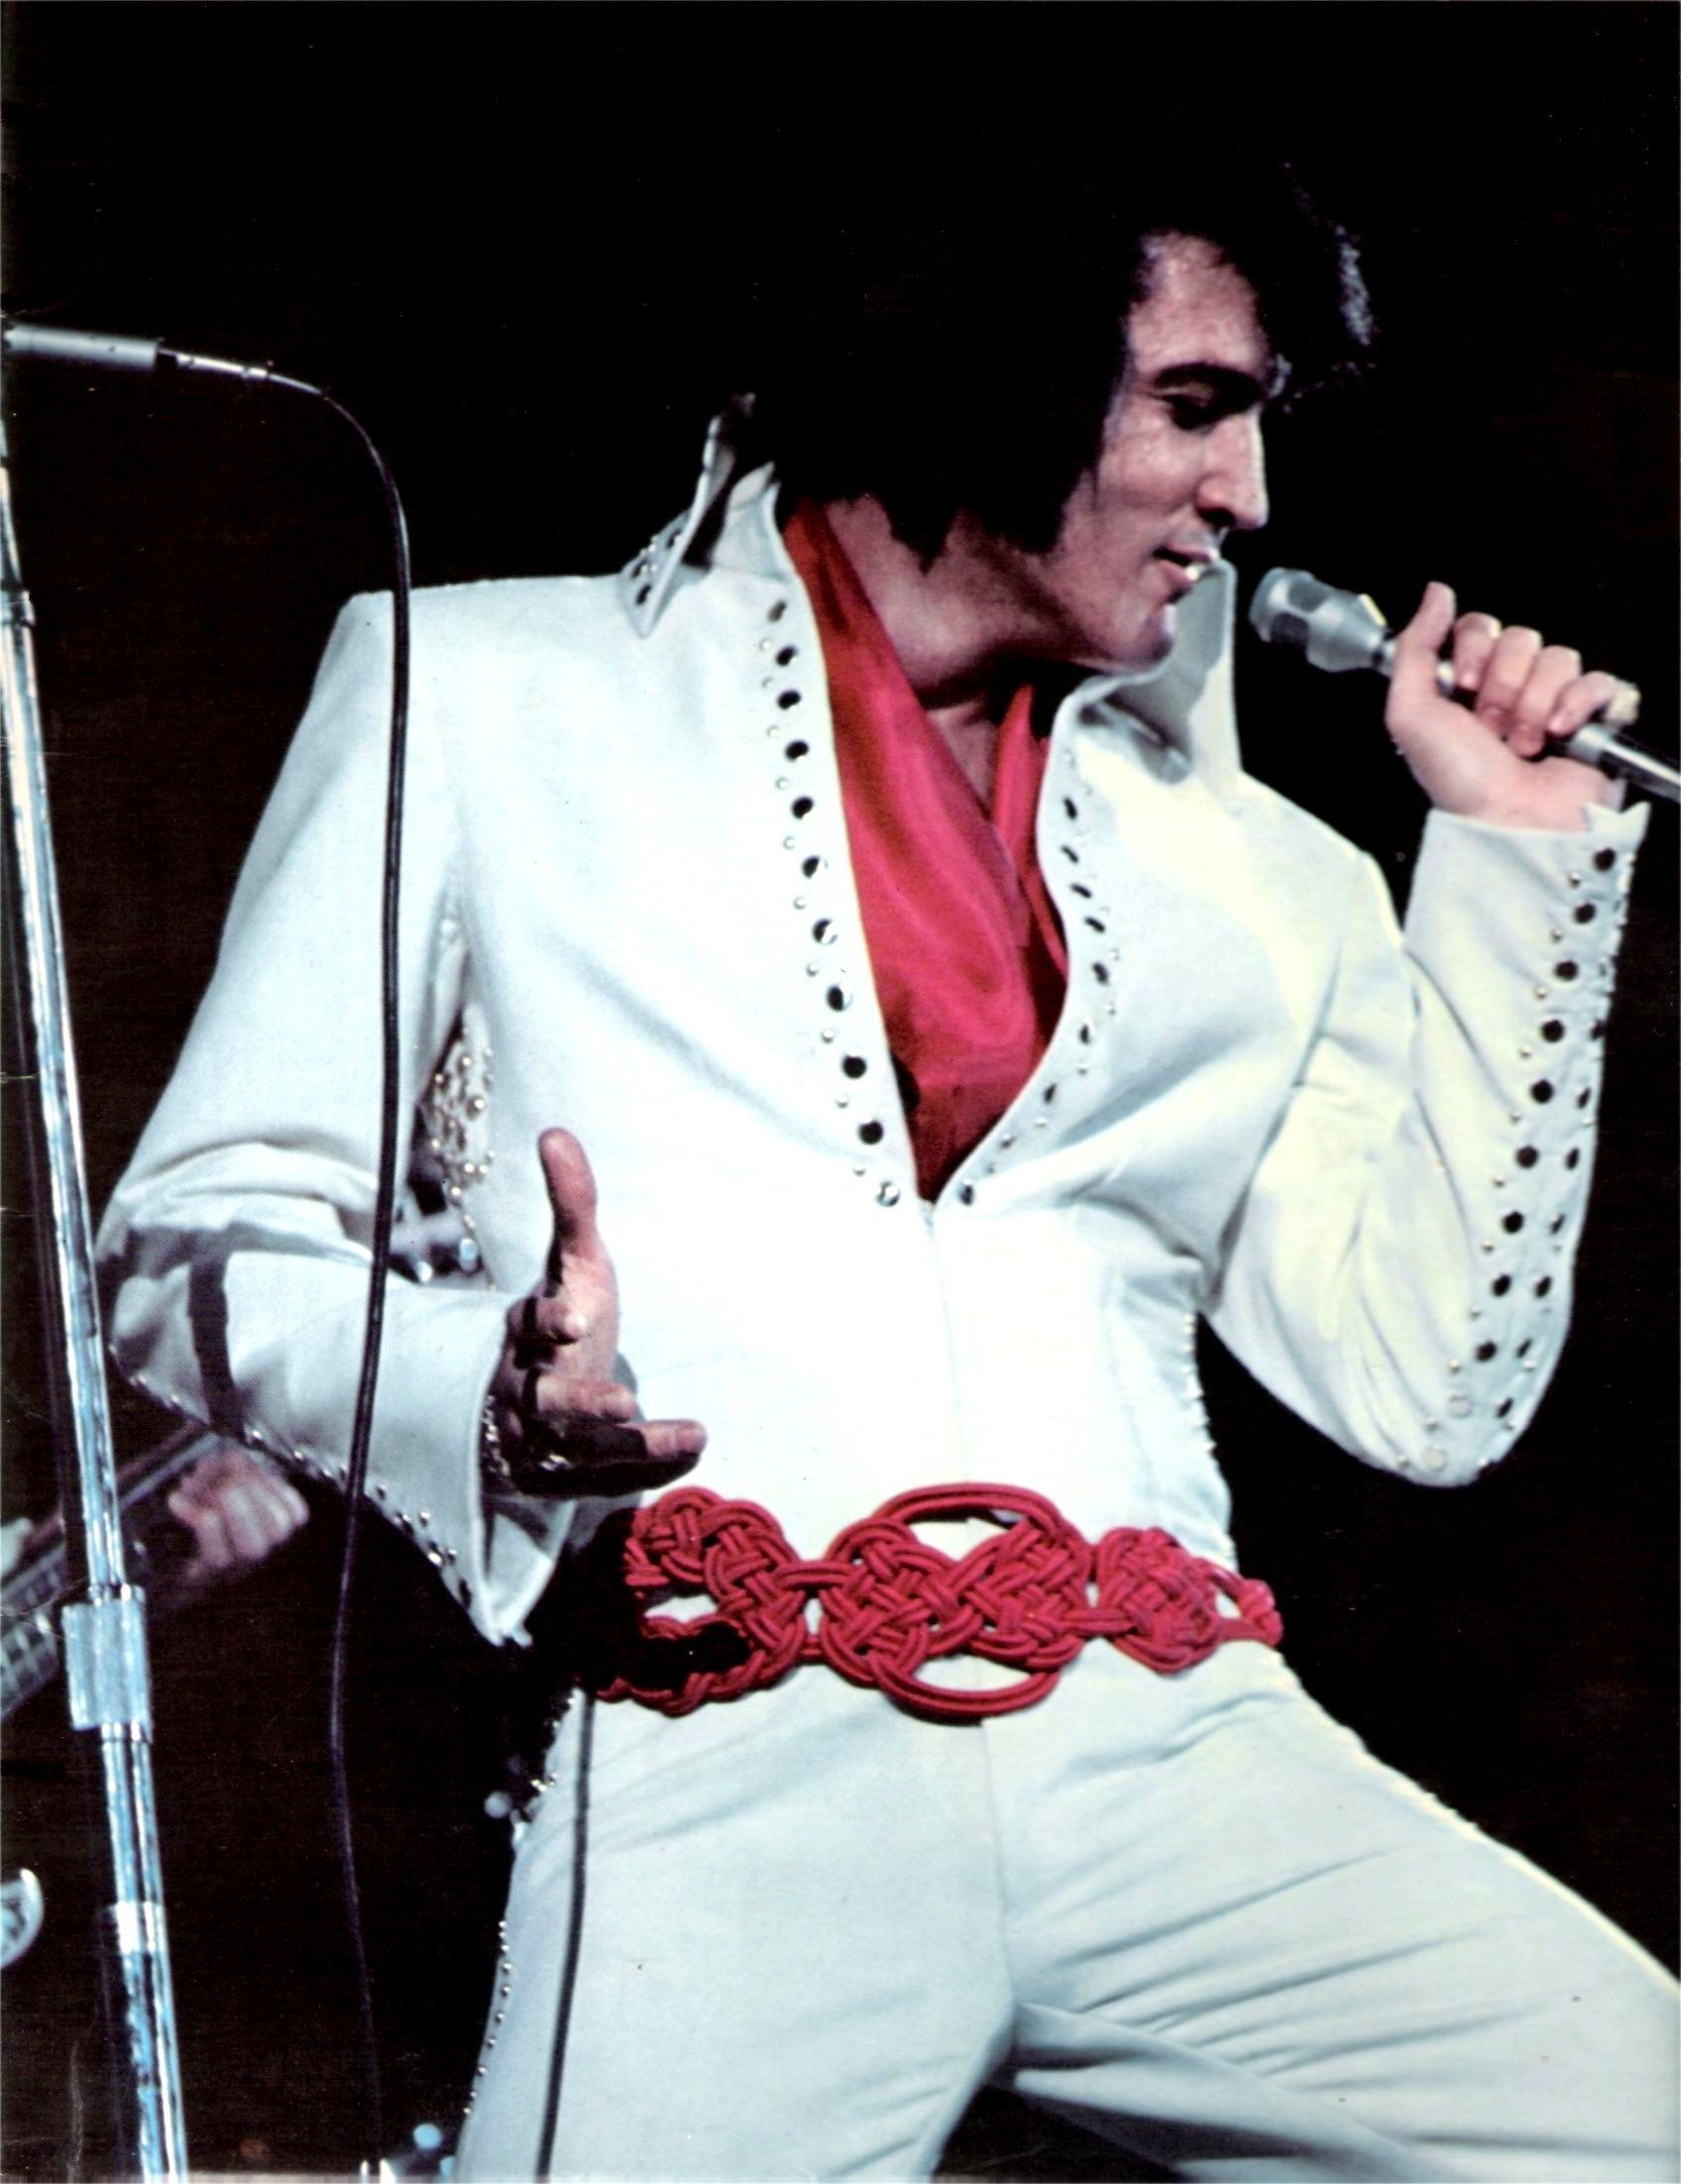 Elvis In Concert In Los Angeles In November 14 1970 Very Well Know Picture Used For The L P Camdem Cover Of The Album I Got Lucky 1971 Farben